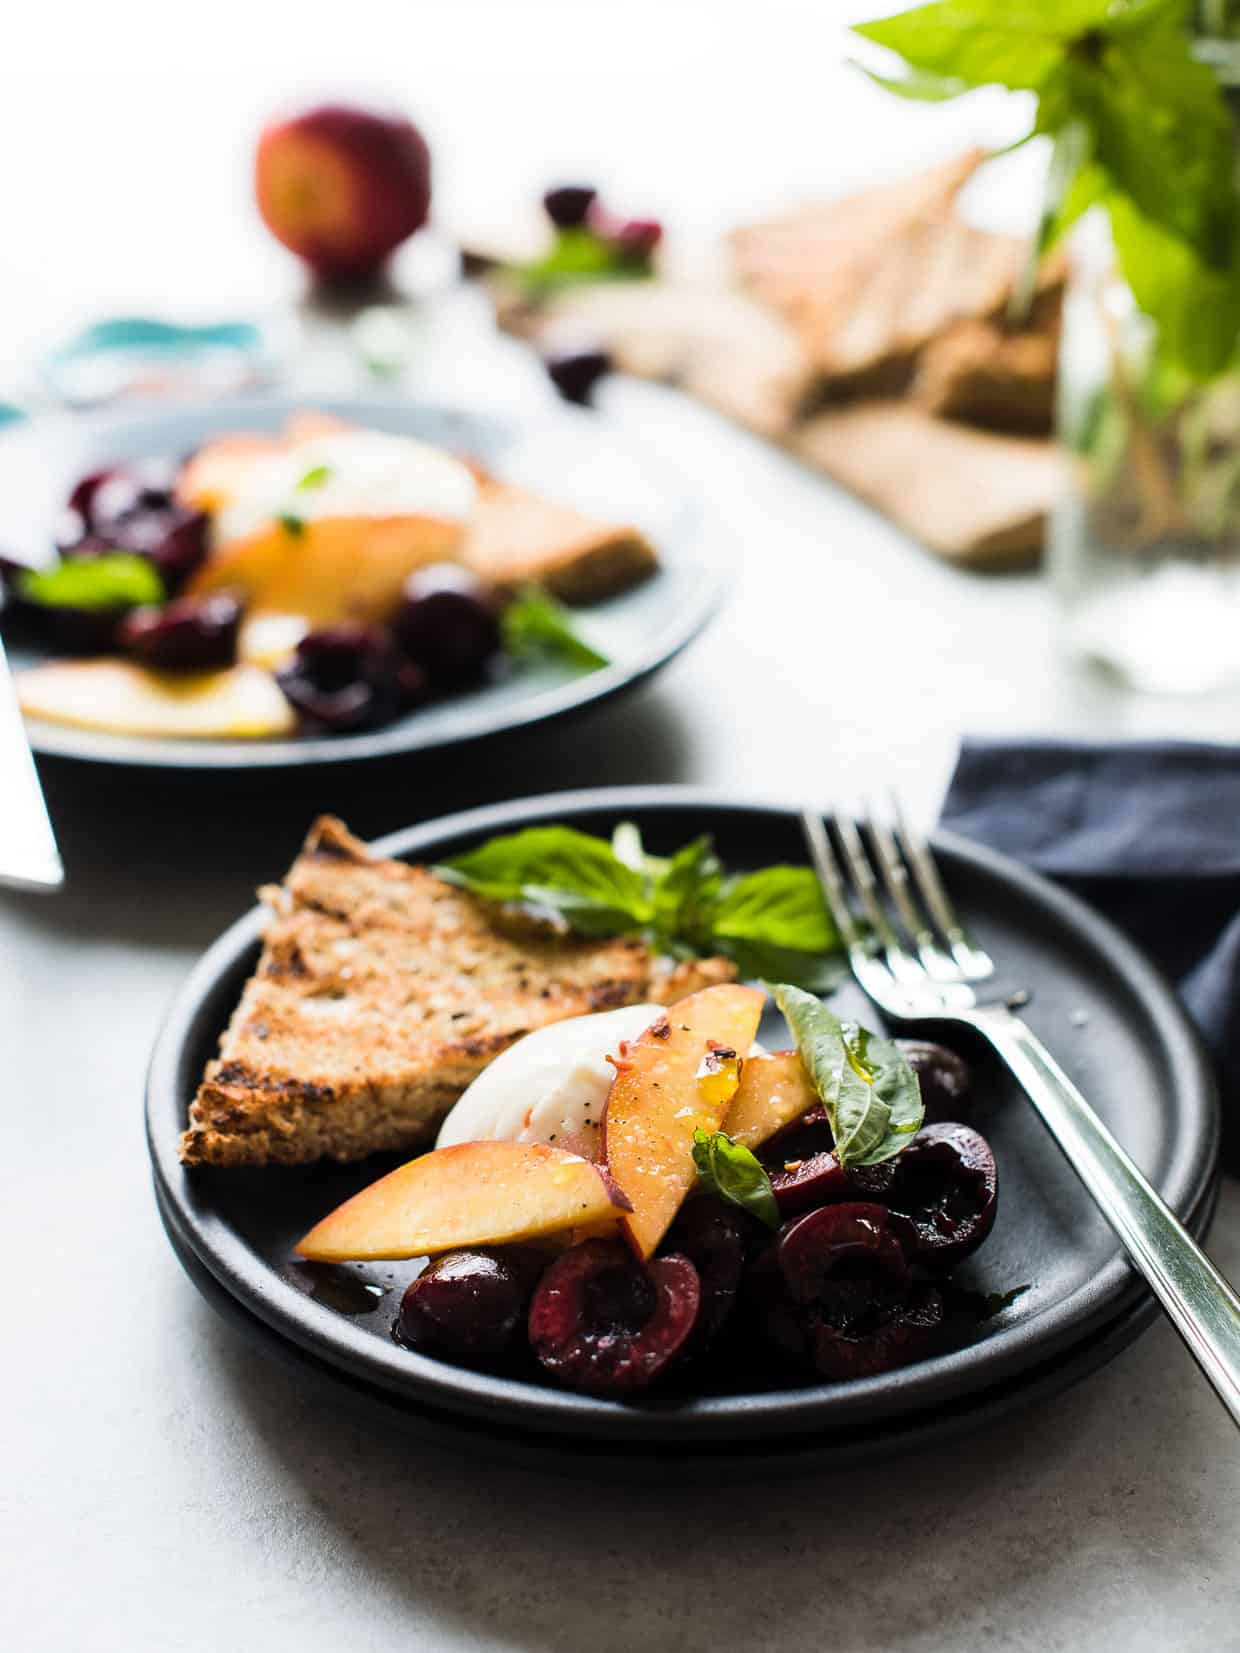 Looking for the perfect summer appetizer or a meal when it's too hot to cook? Burrata with Stone Fruit like cherries and nectarines, drizzled in a balsamic dressing is just the thing!